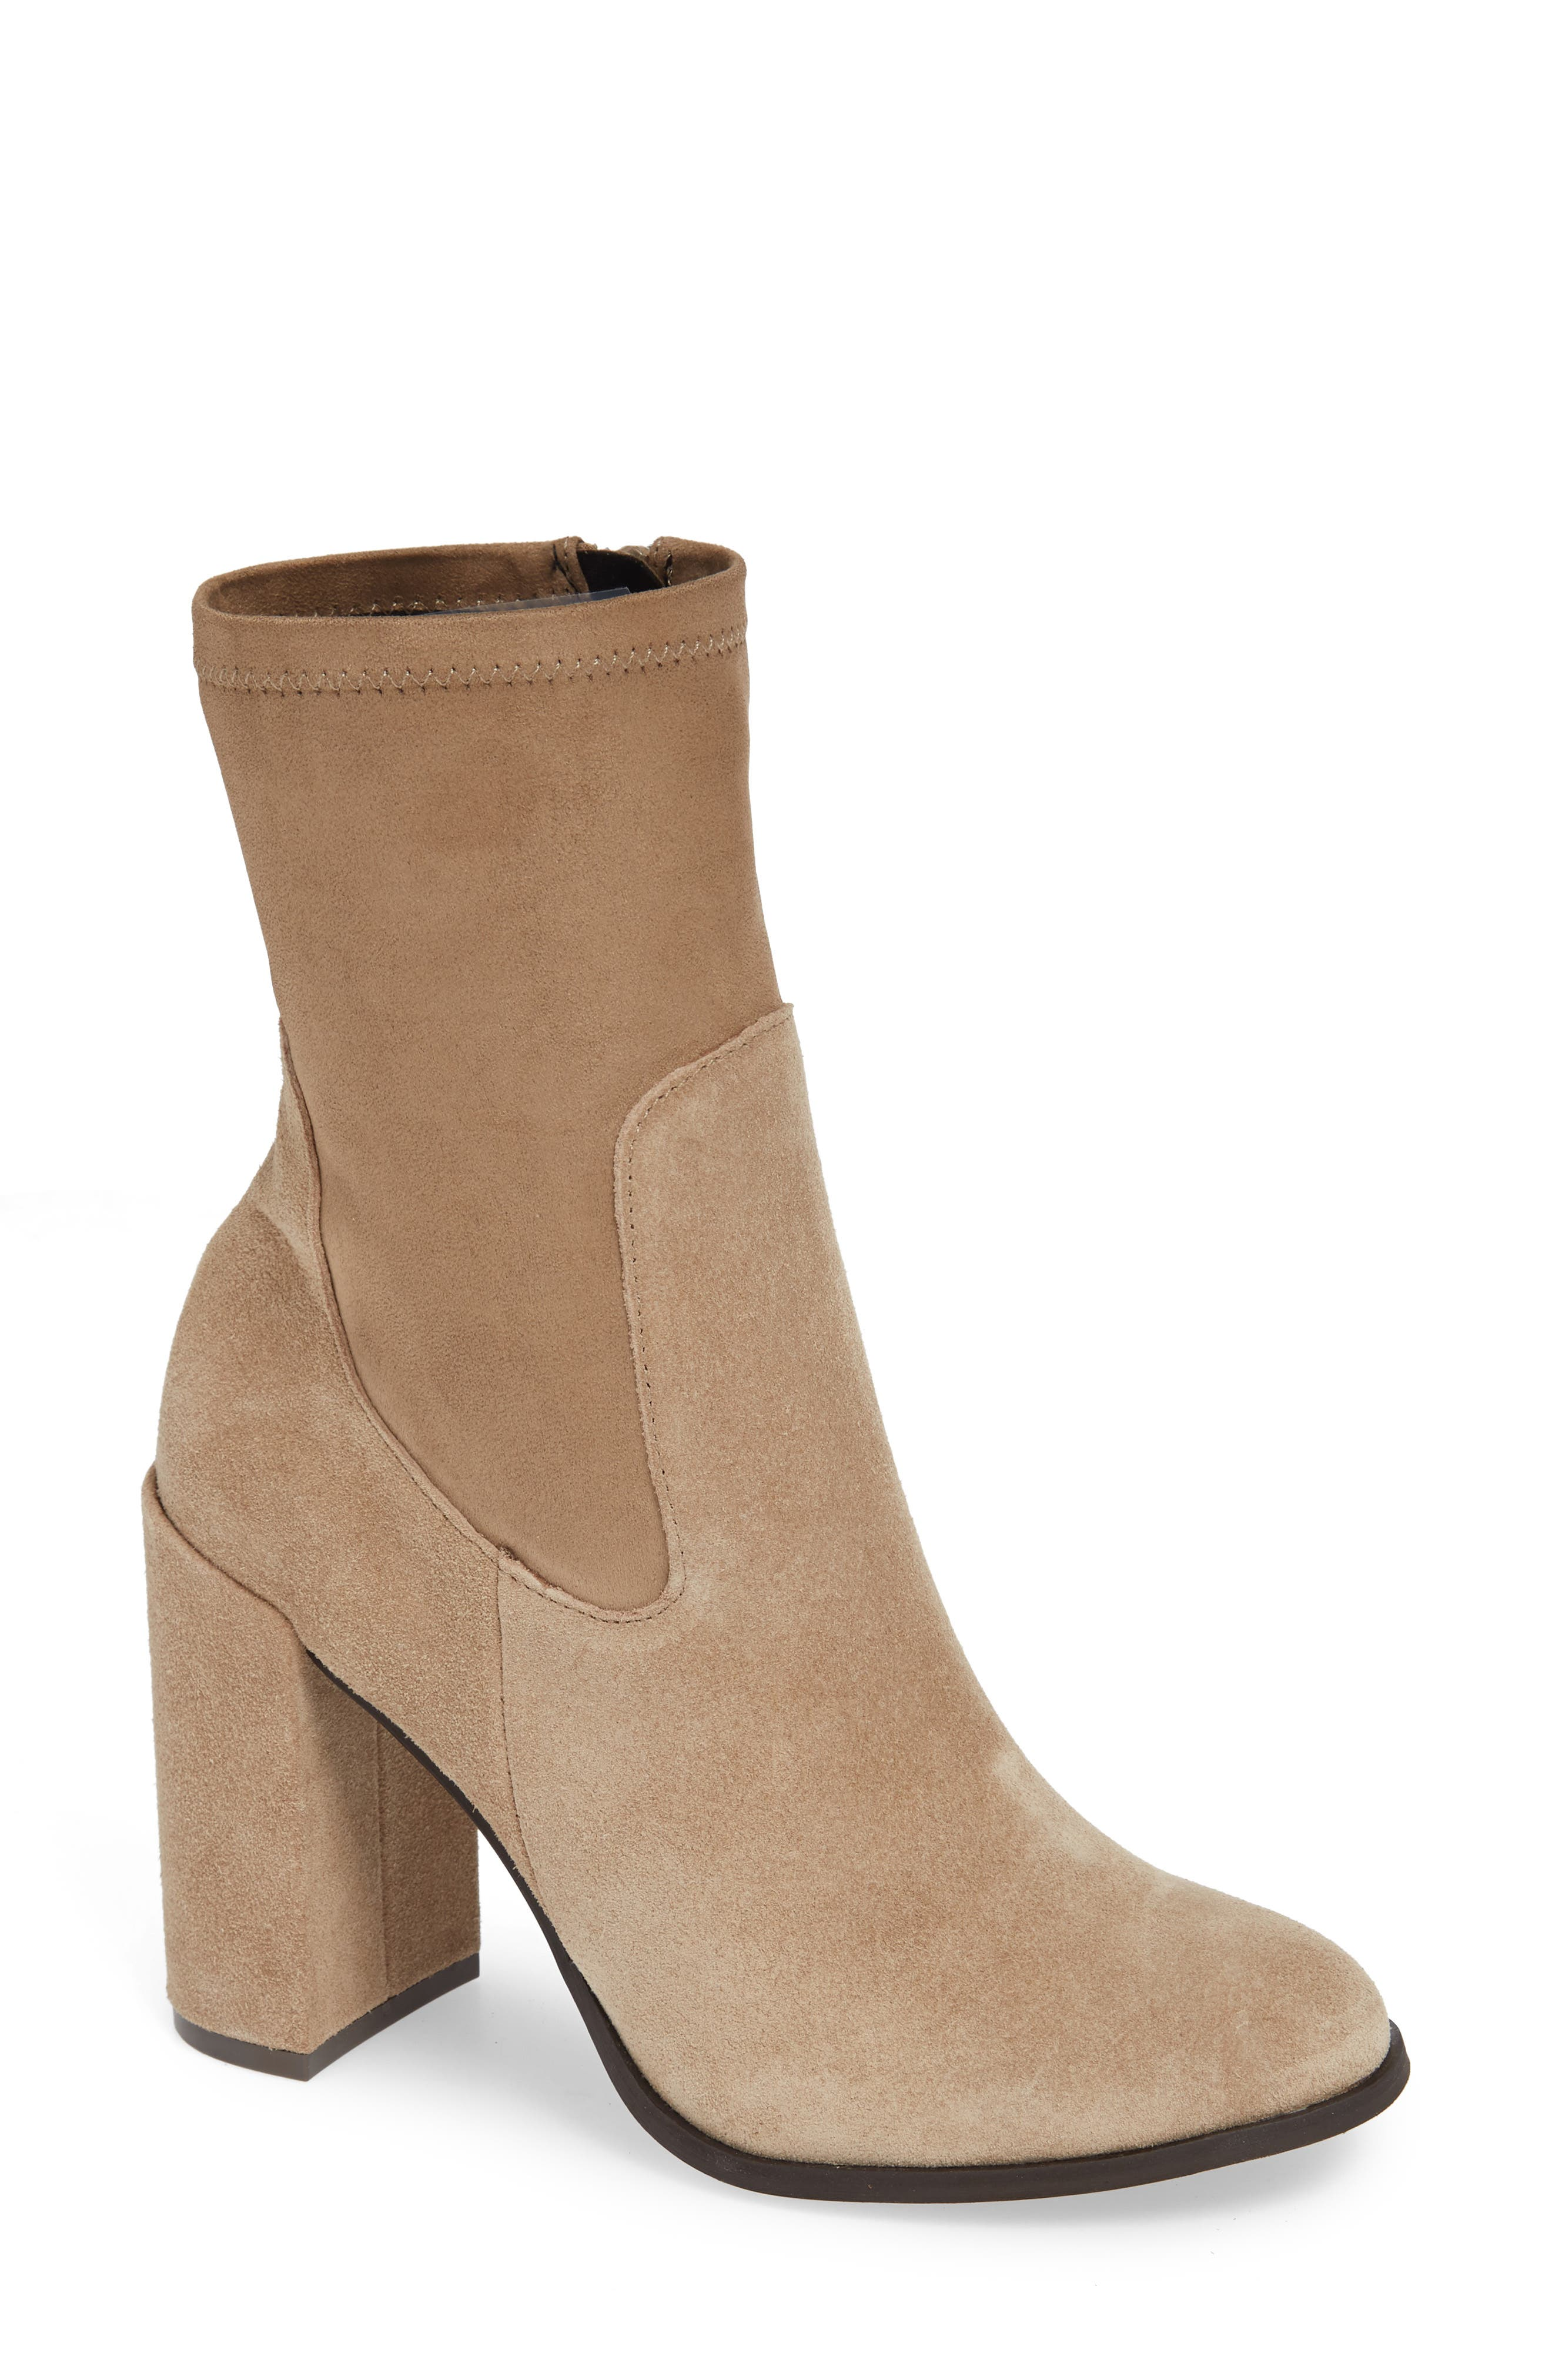 Chinese Laundry Capricorn Bootie, Beige